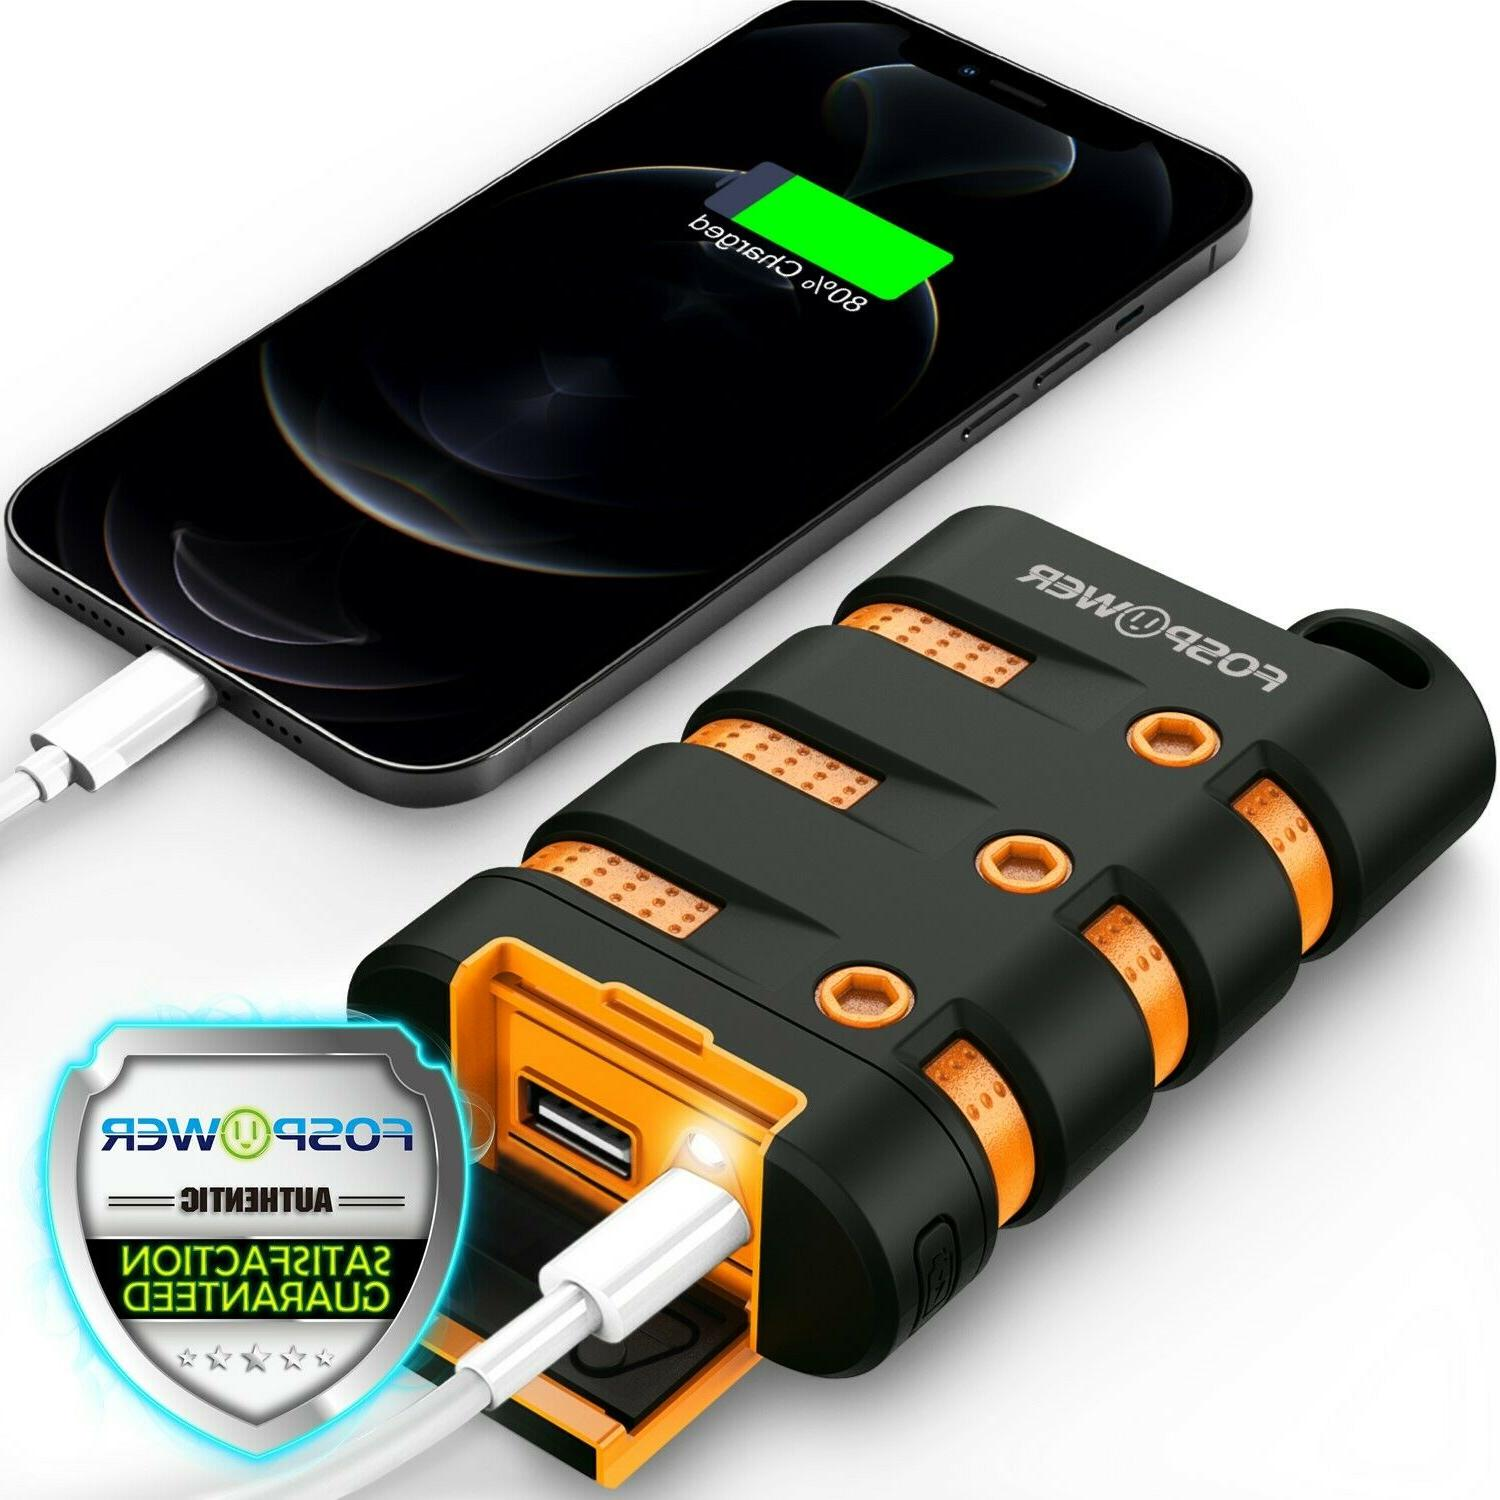 waterproof heavy duty portable phone charger external